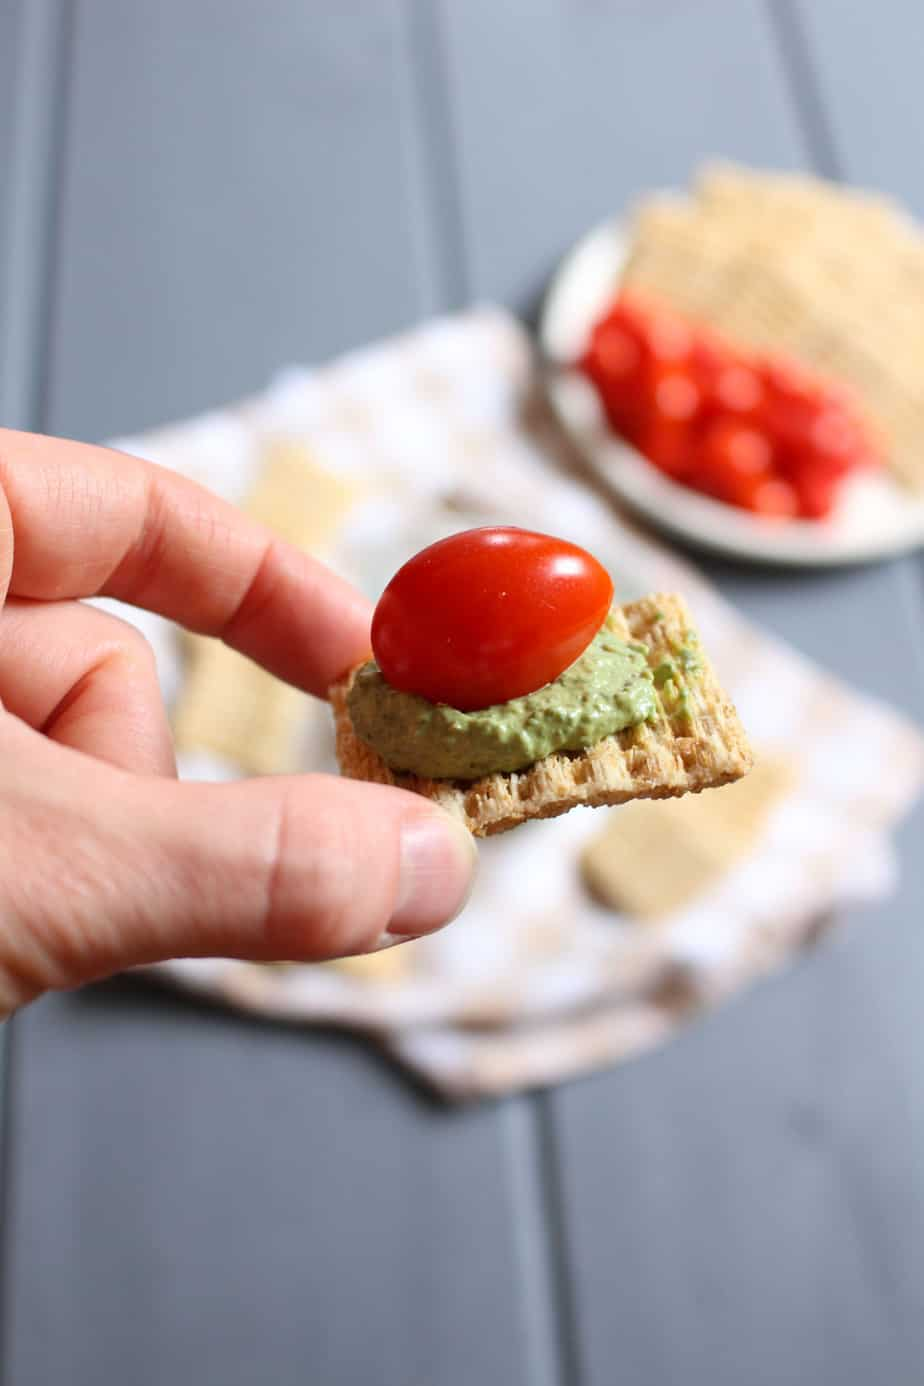 Basil Cream Cheese Dip with Crackers and Tomatoes | Frugal Nutrition